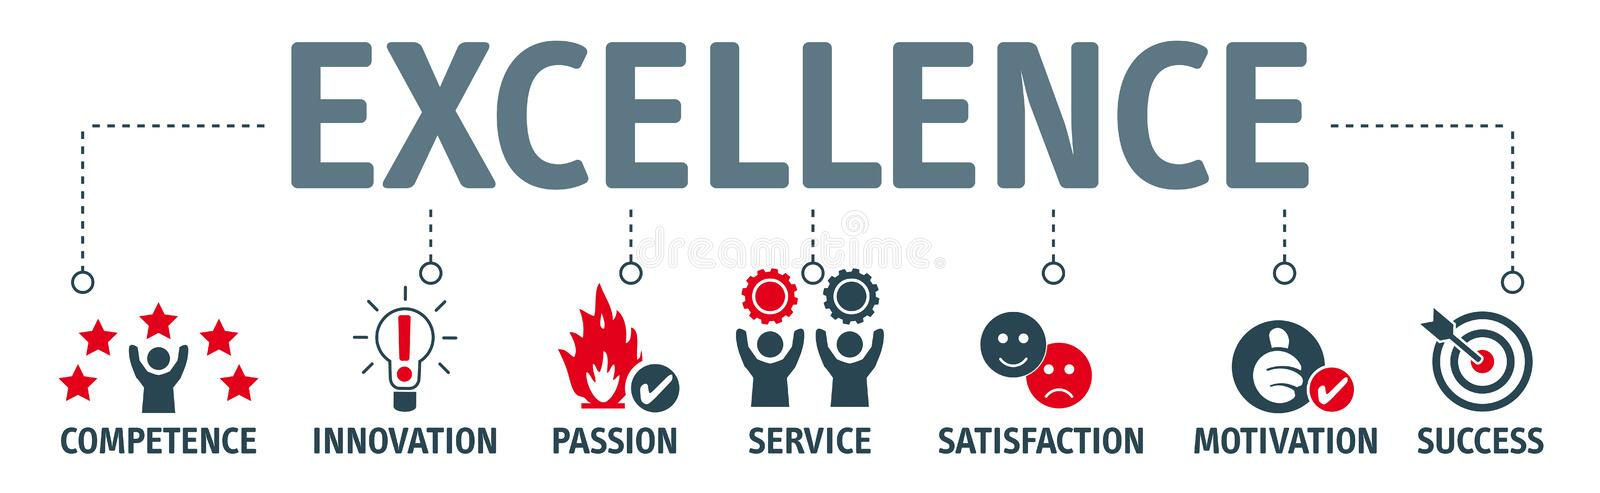 Excellence concept - banner with keywords and icons. Achieve Business Excellence as concept. Vector illustration with keywords and icons vector illustration